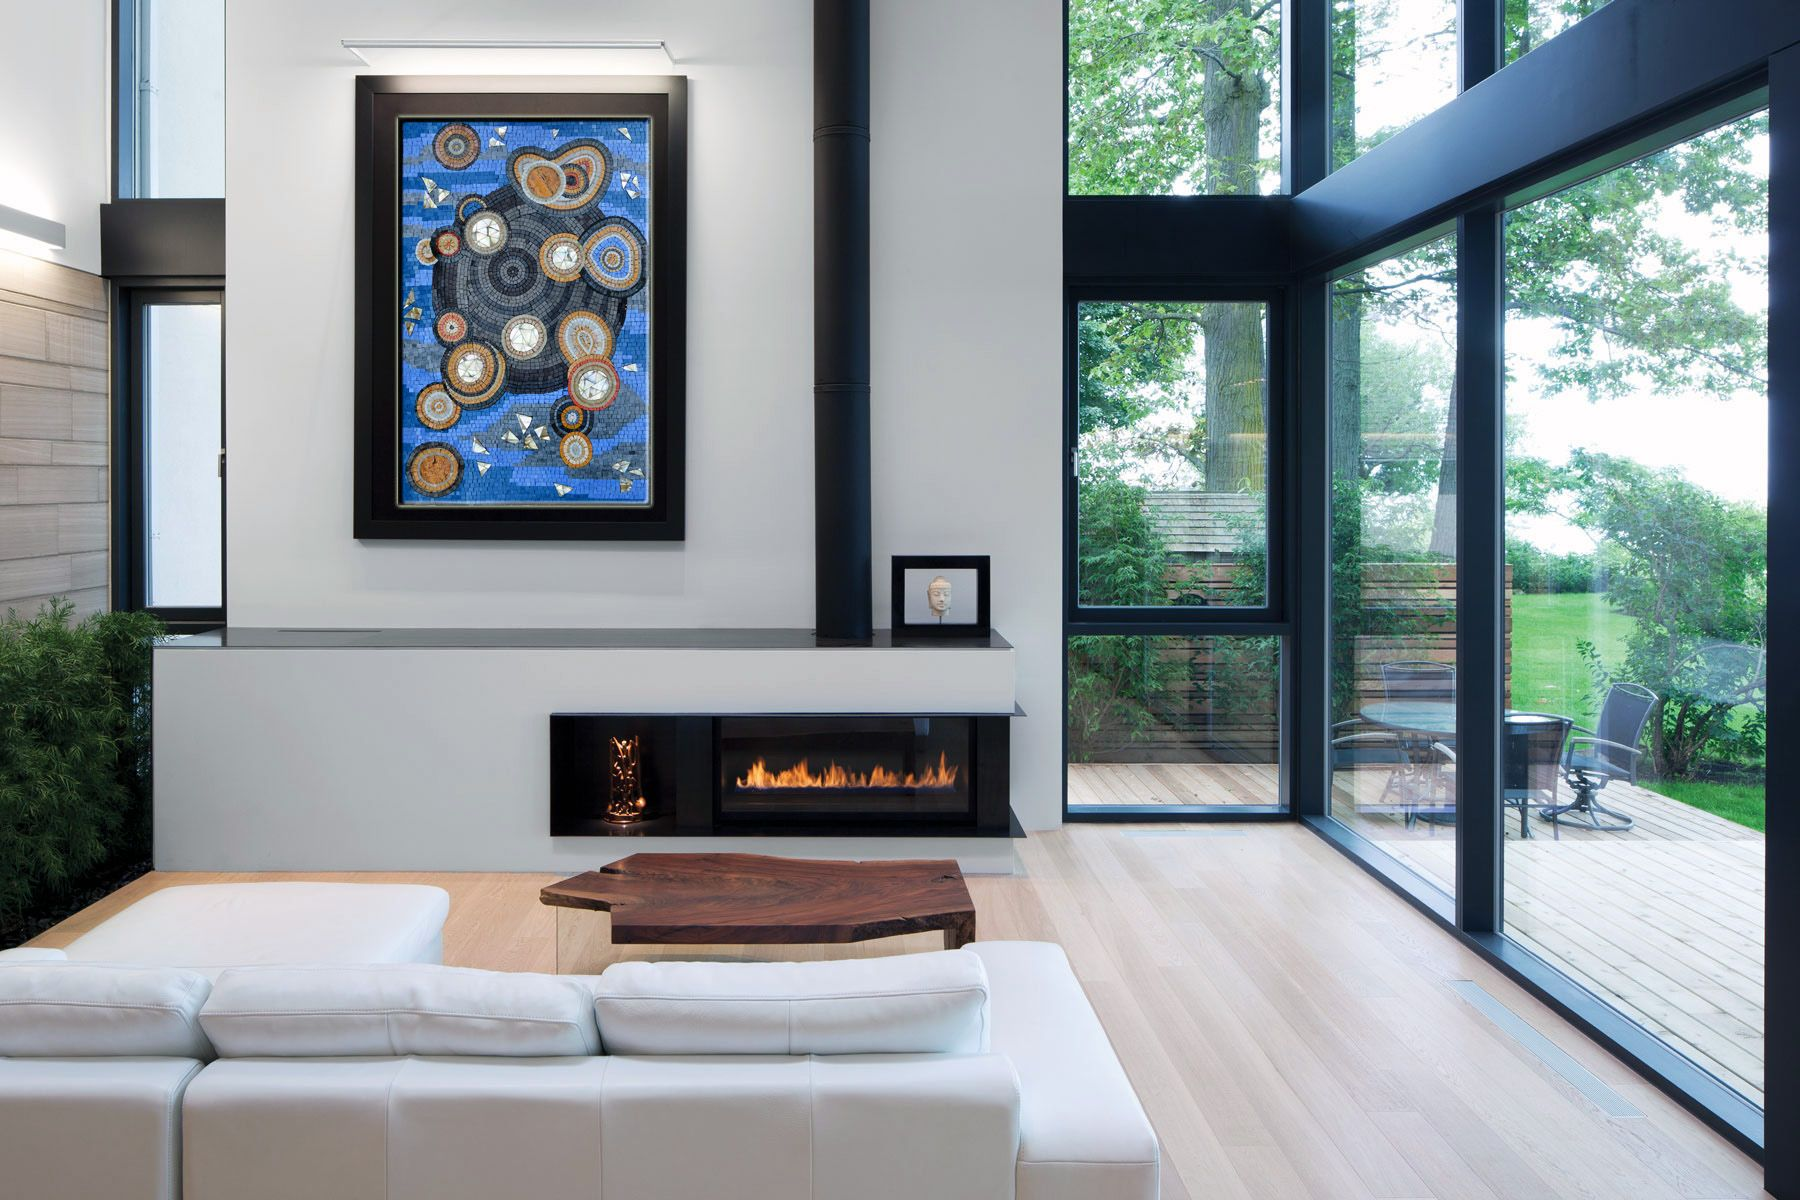 Exterior window wall design abstract mosaic art  mosaic universe  abstract wall art mosaic